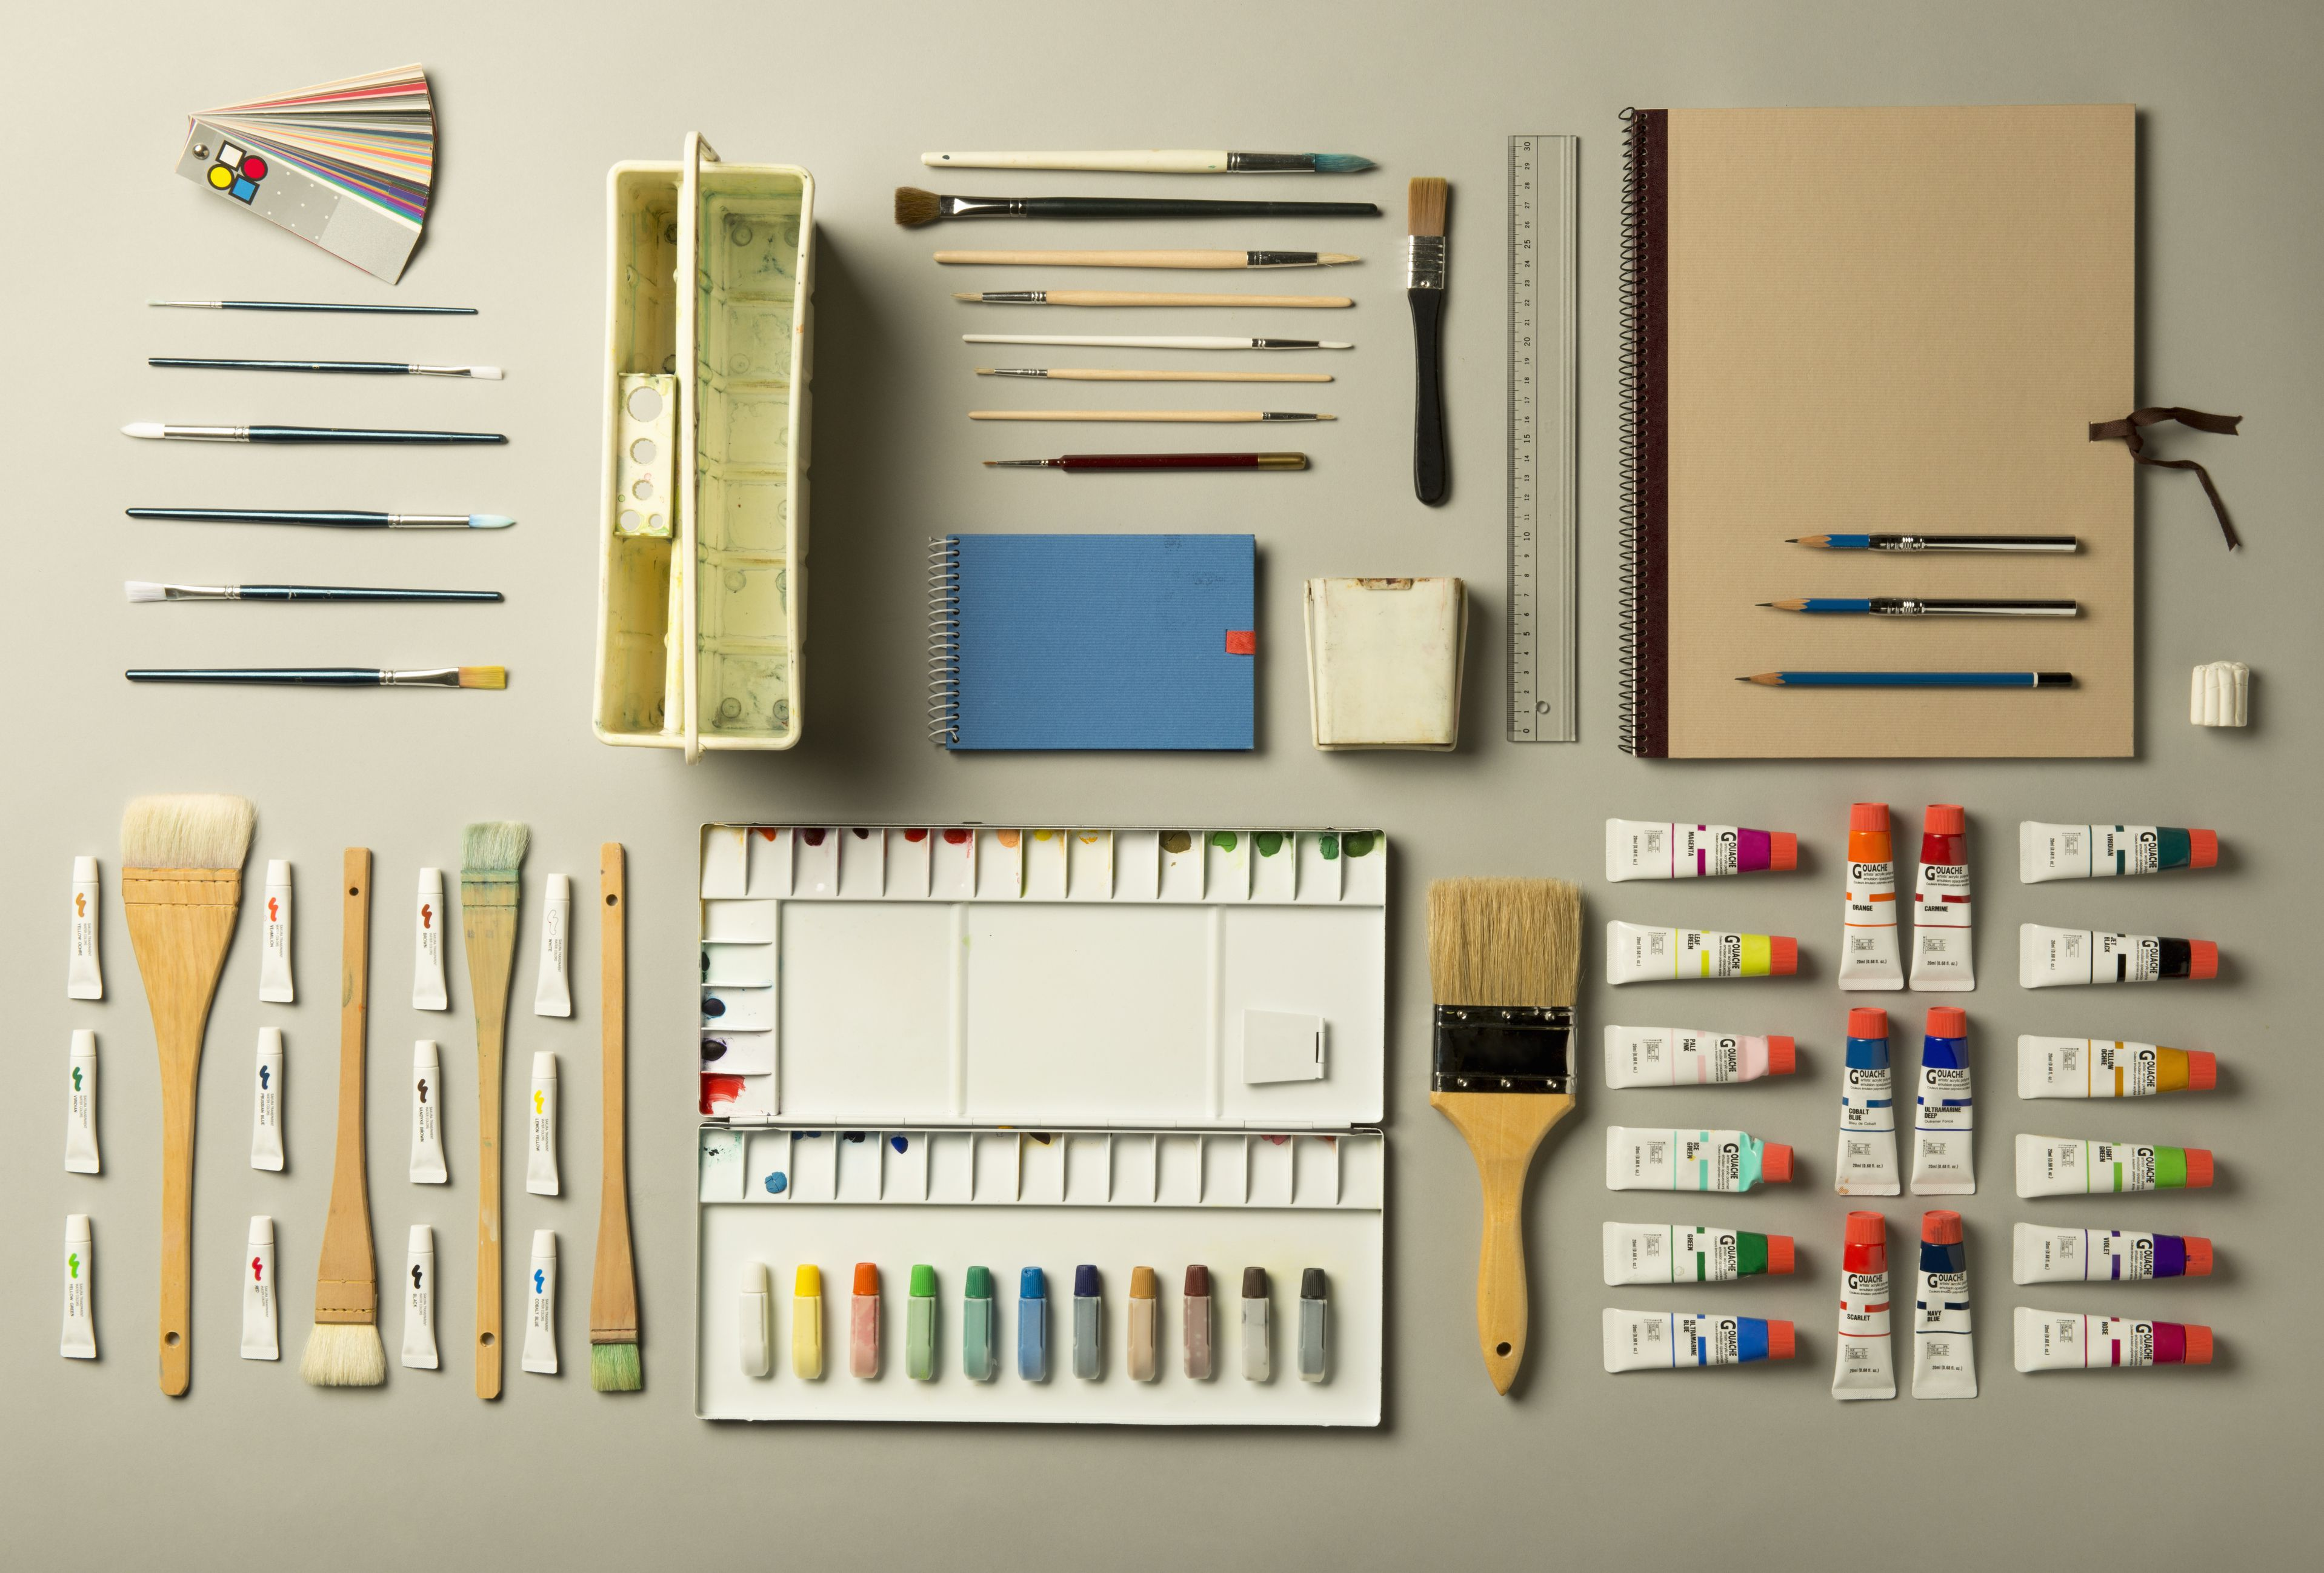 Watercolor painting supplies shot knolling style.